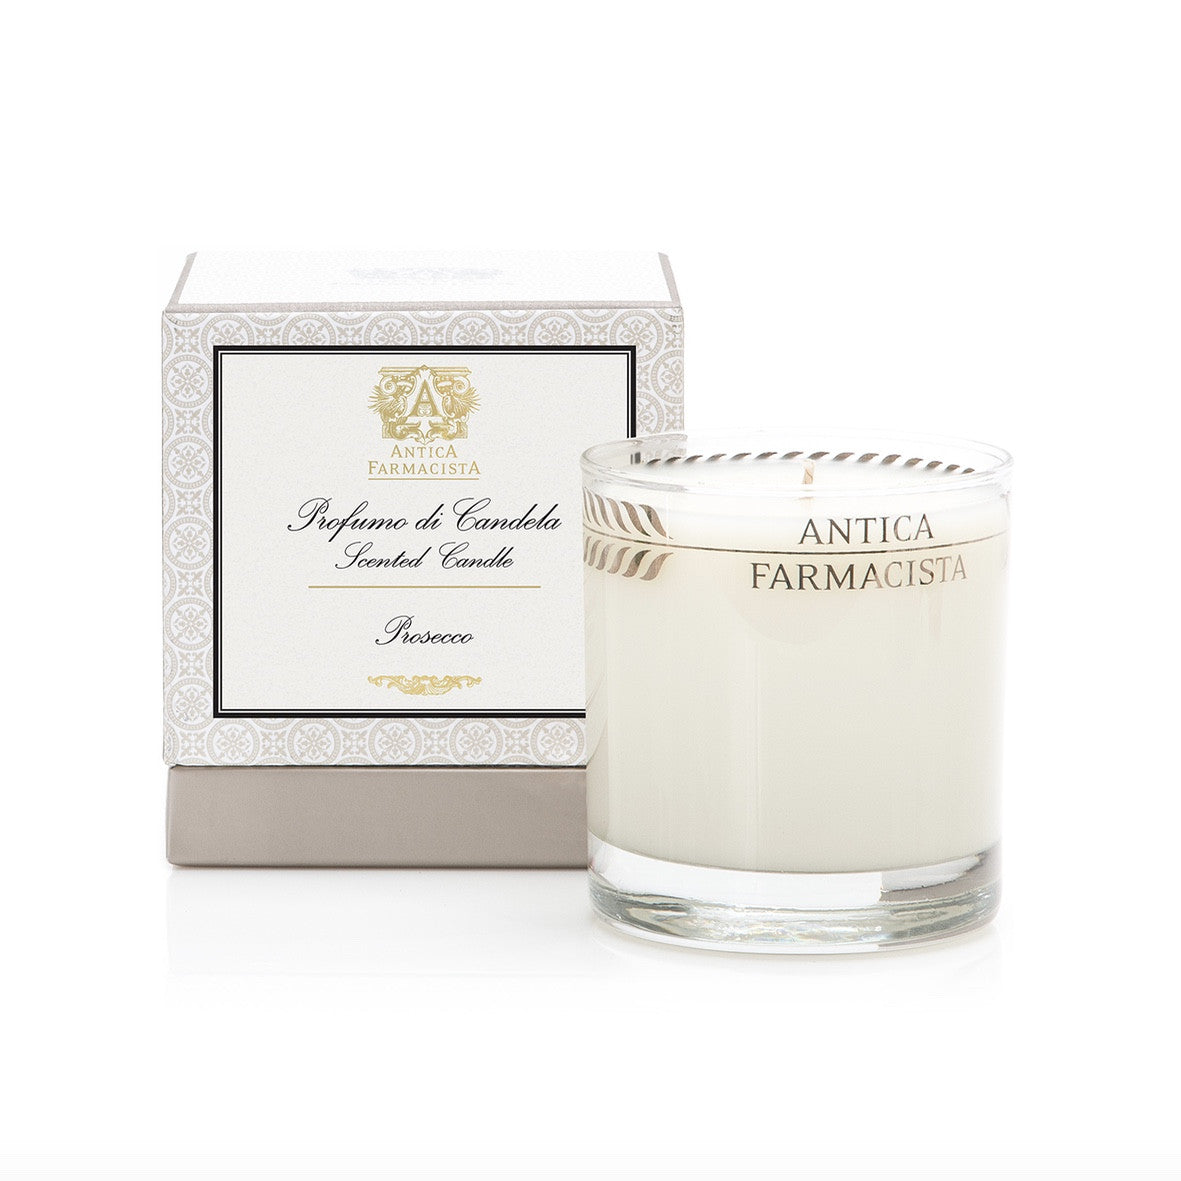 Antica Farmacista Prosecco Candle, AF-Antica Farmacista, Putti Fine Furnishings